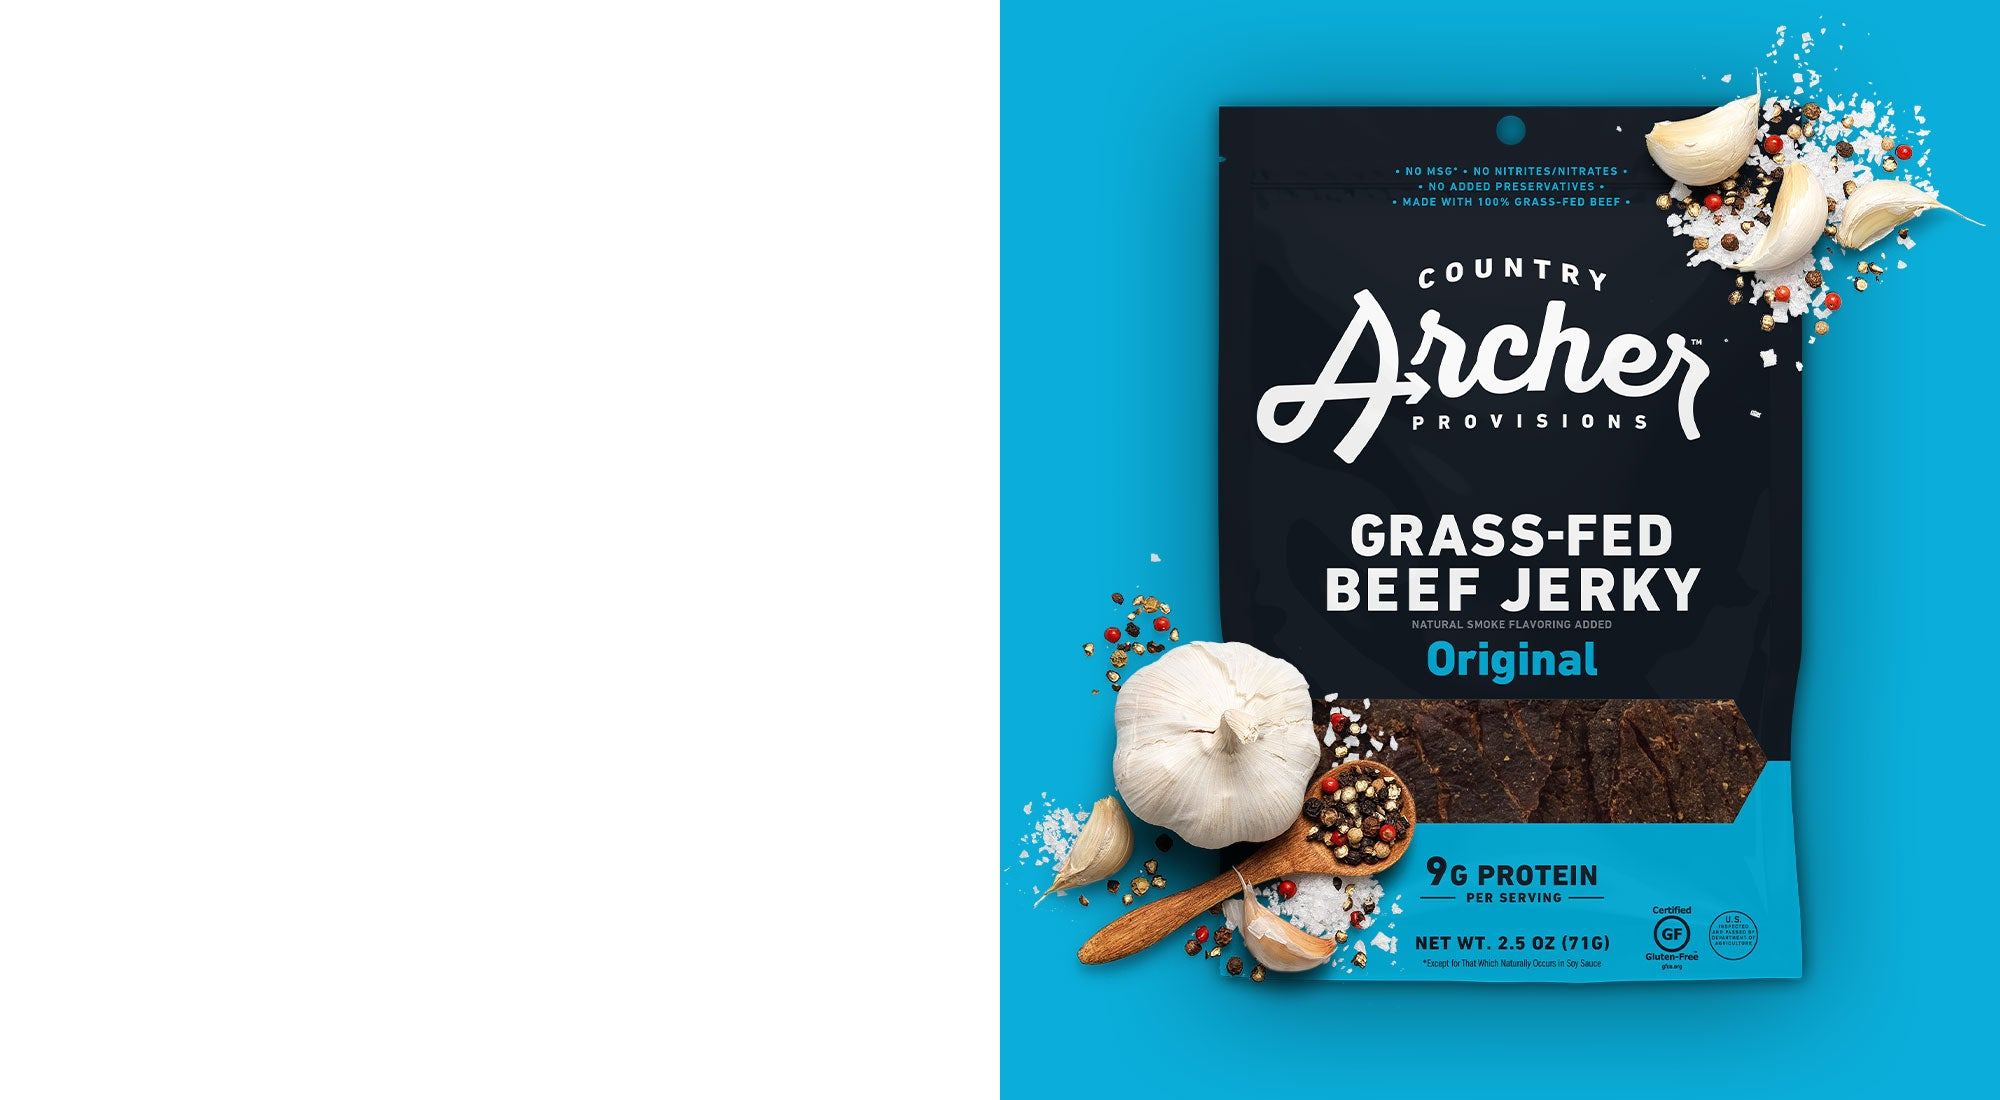 Country Archer Grass-Fed Beef Jerky